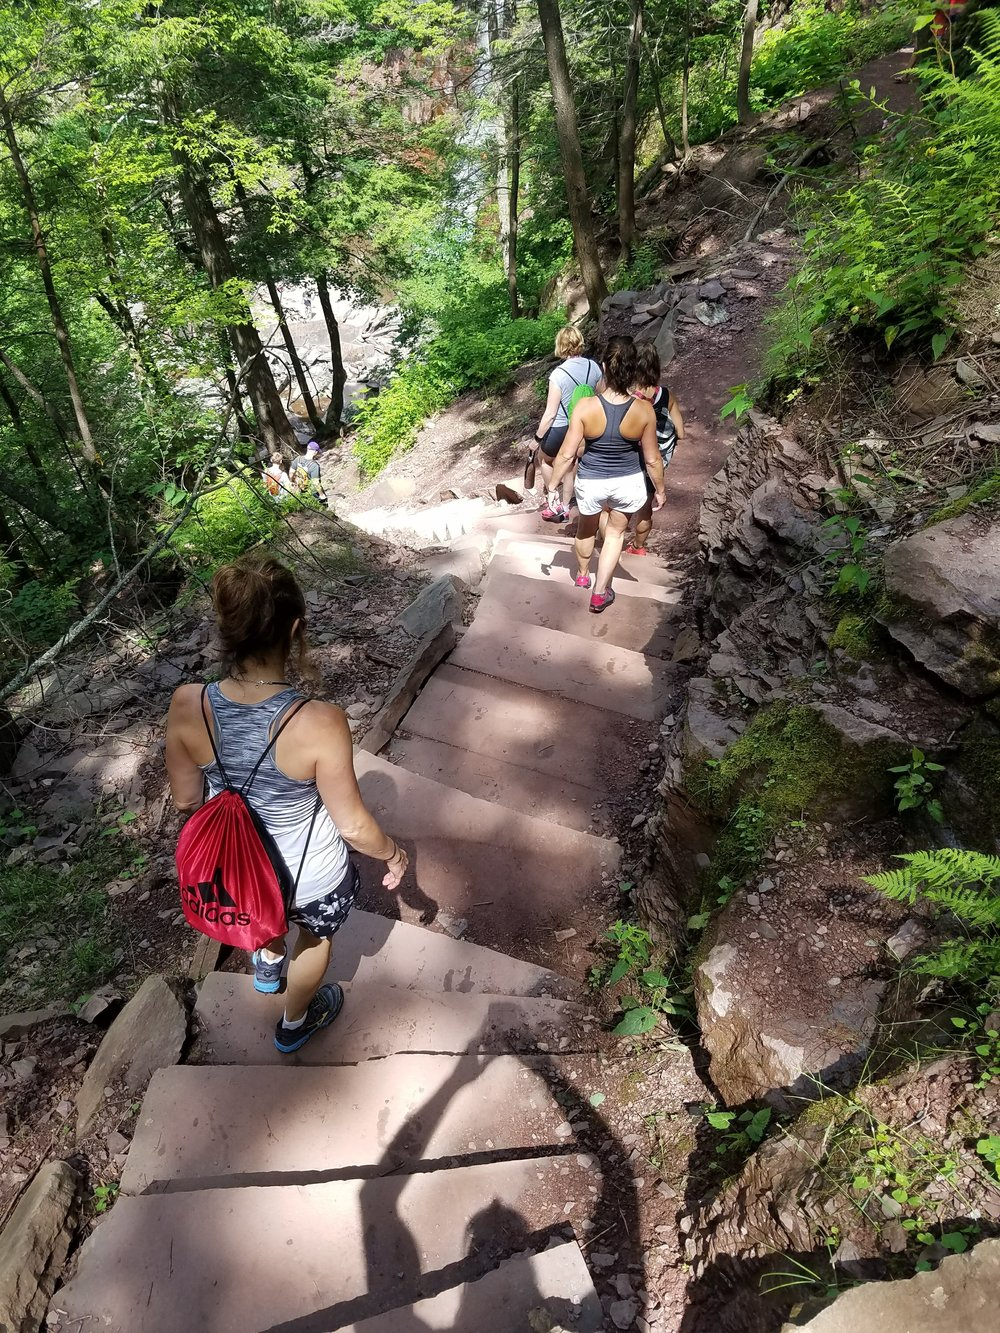 A few of our guests walking down the trail to the beautiful Kaaterskill Falls.  We stopped along the way to take in the breathtaking views, snap a few photos and enjoy the chill vibes that nature provides.